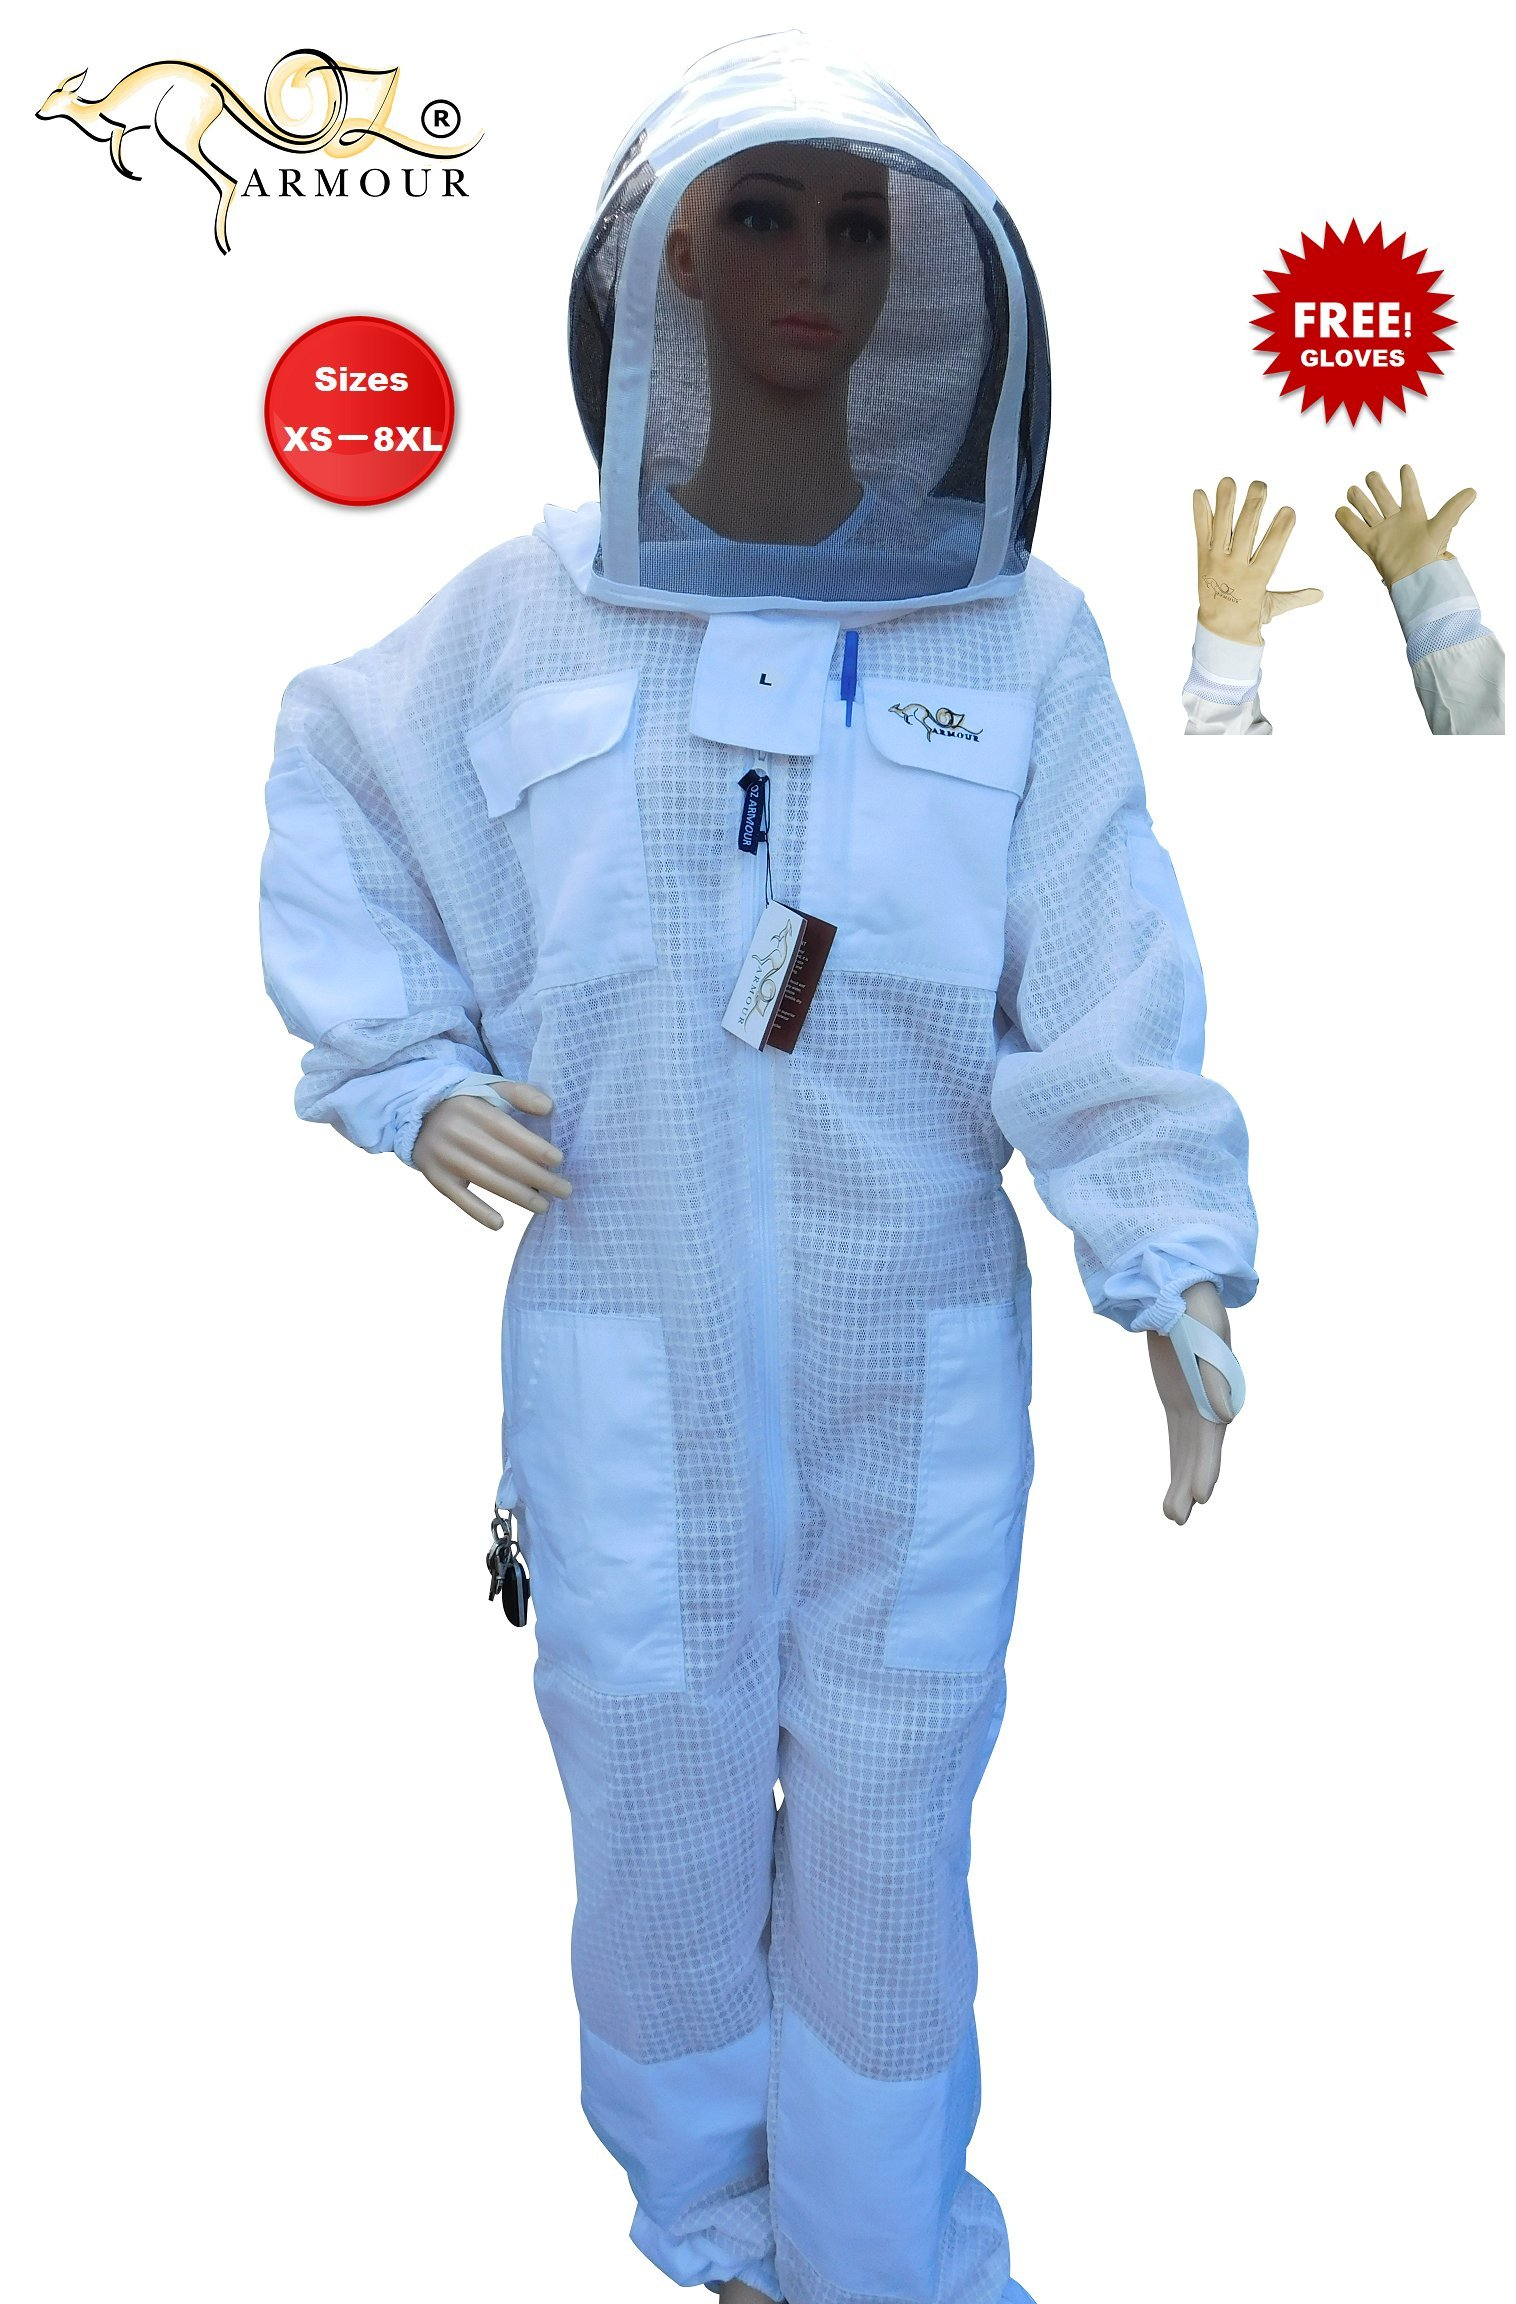 BEEKEEPING FULL SUIT VENTILATED ULTRA COOL WITH HOOD 3 LAYERS MESH WITH COW HIDE VENTILATED BEEKEEPING GLOVES (XX-Large)